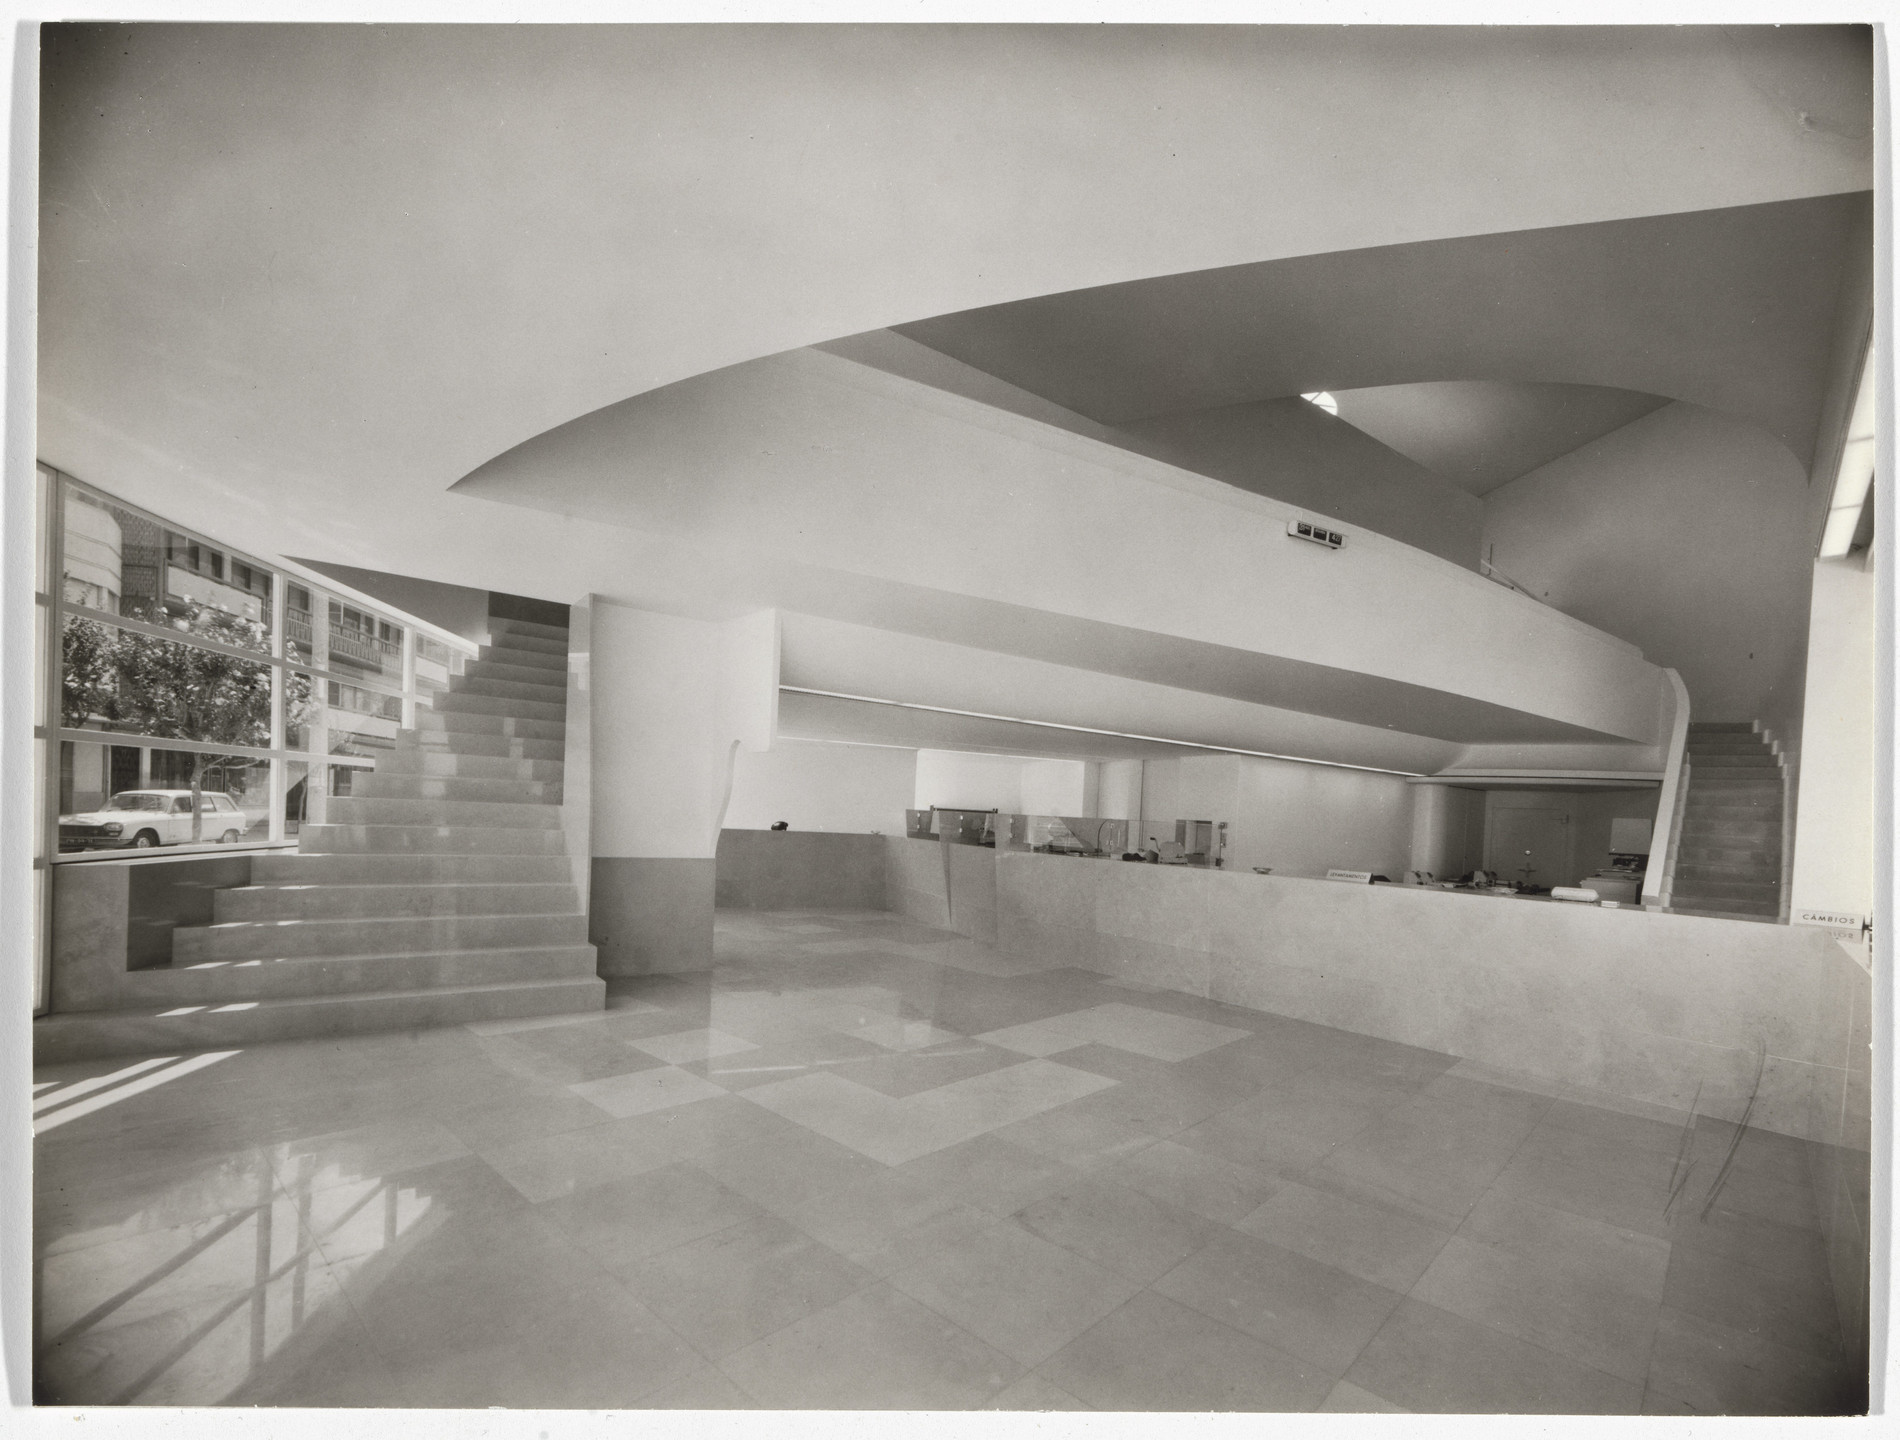 Álvaro Siza. Banco Pinto & Sotto Mayor, Oliveira de Azeméis, Portugal (Interior view). 1971-1974